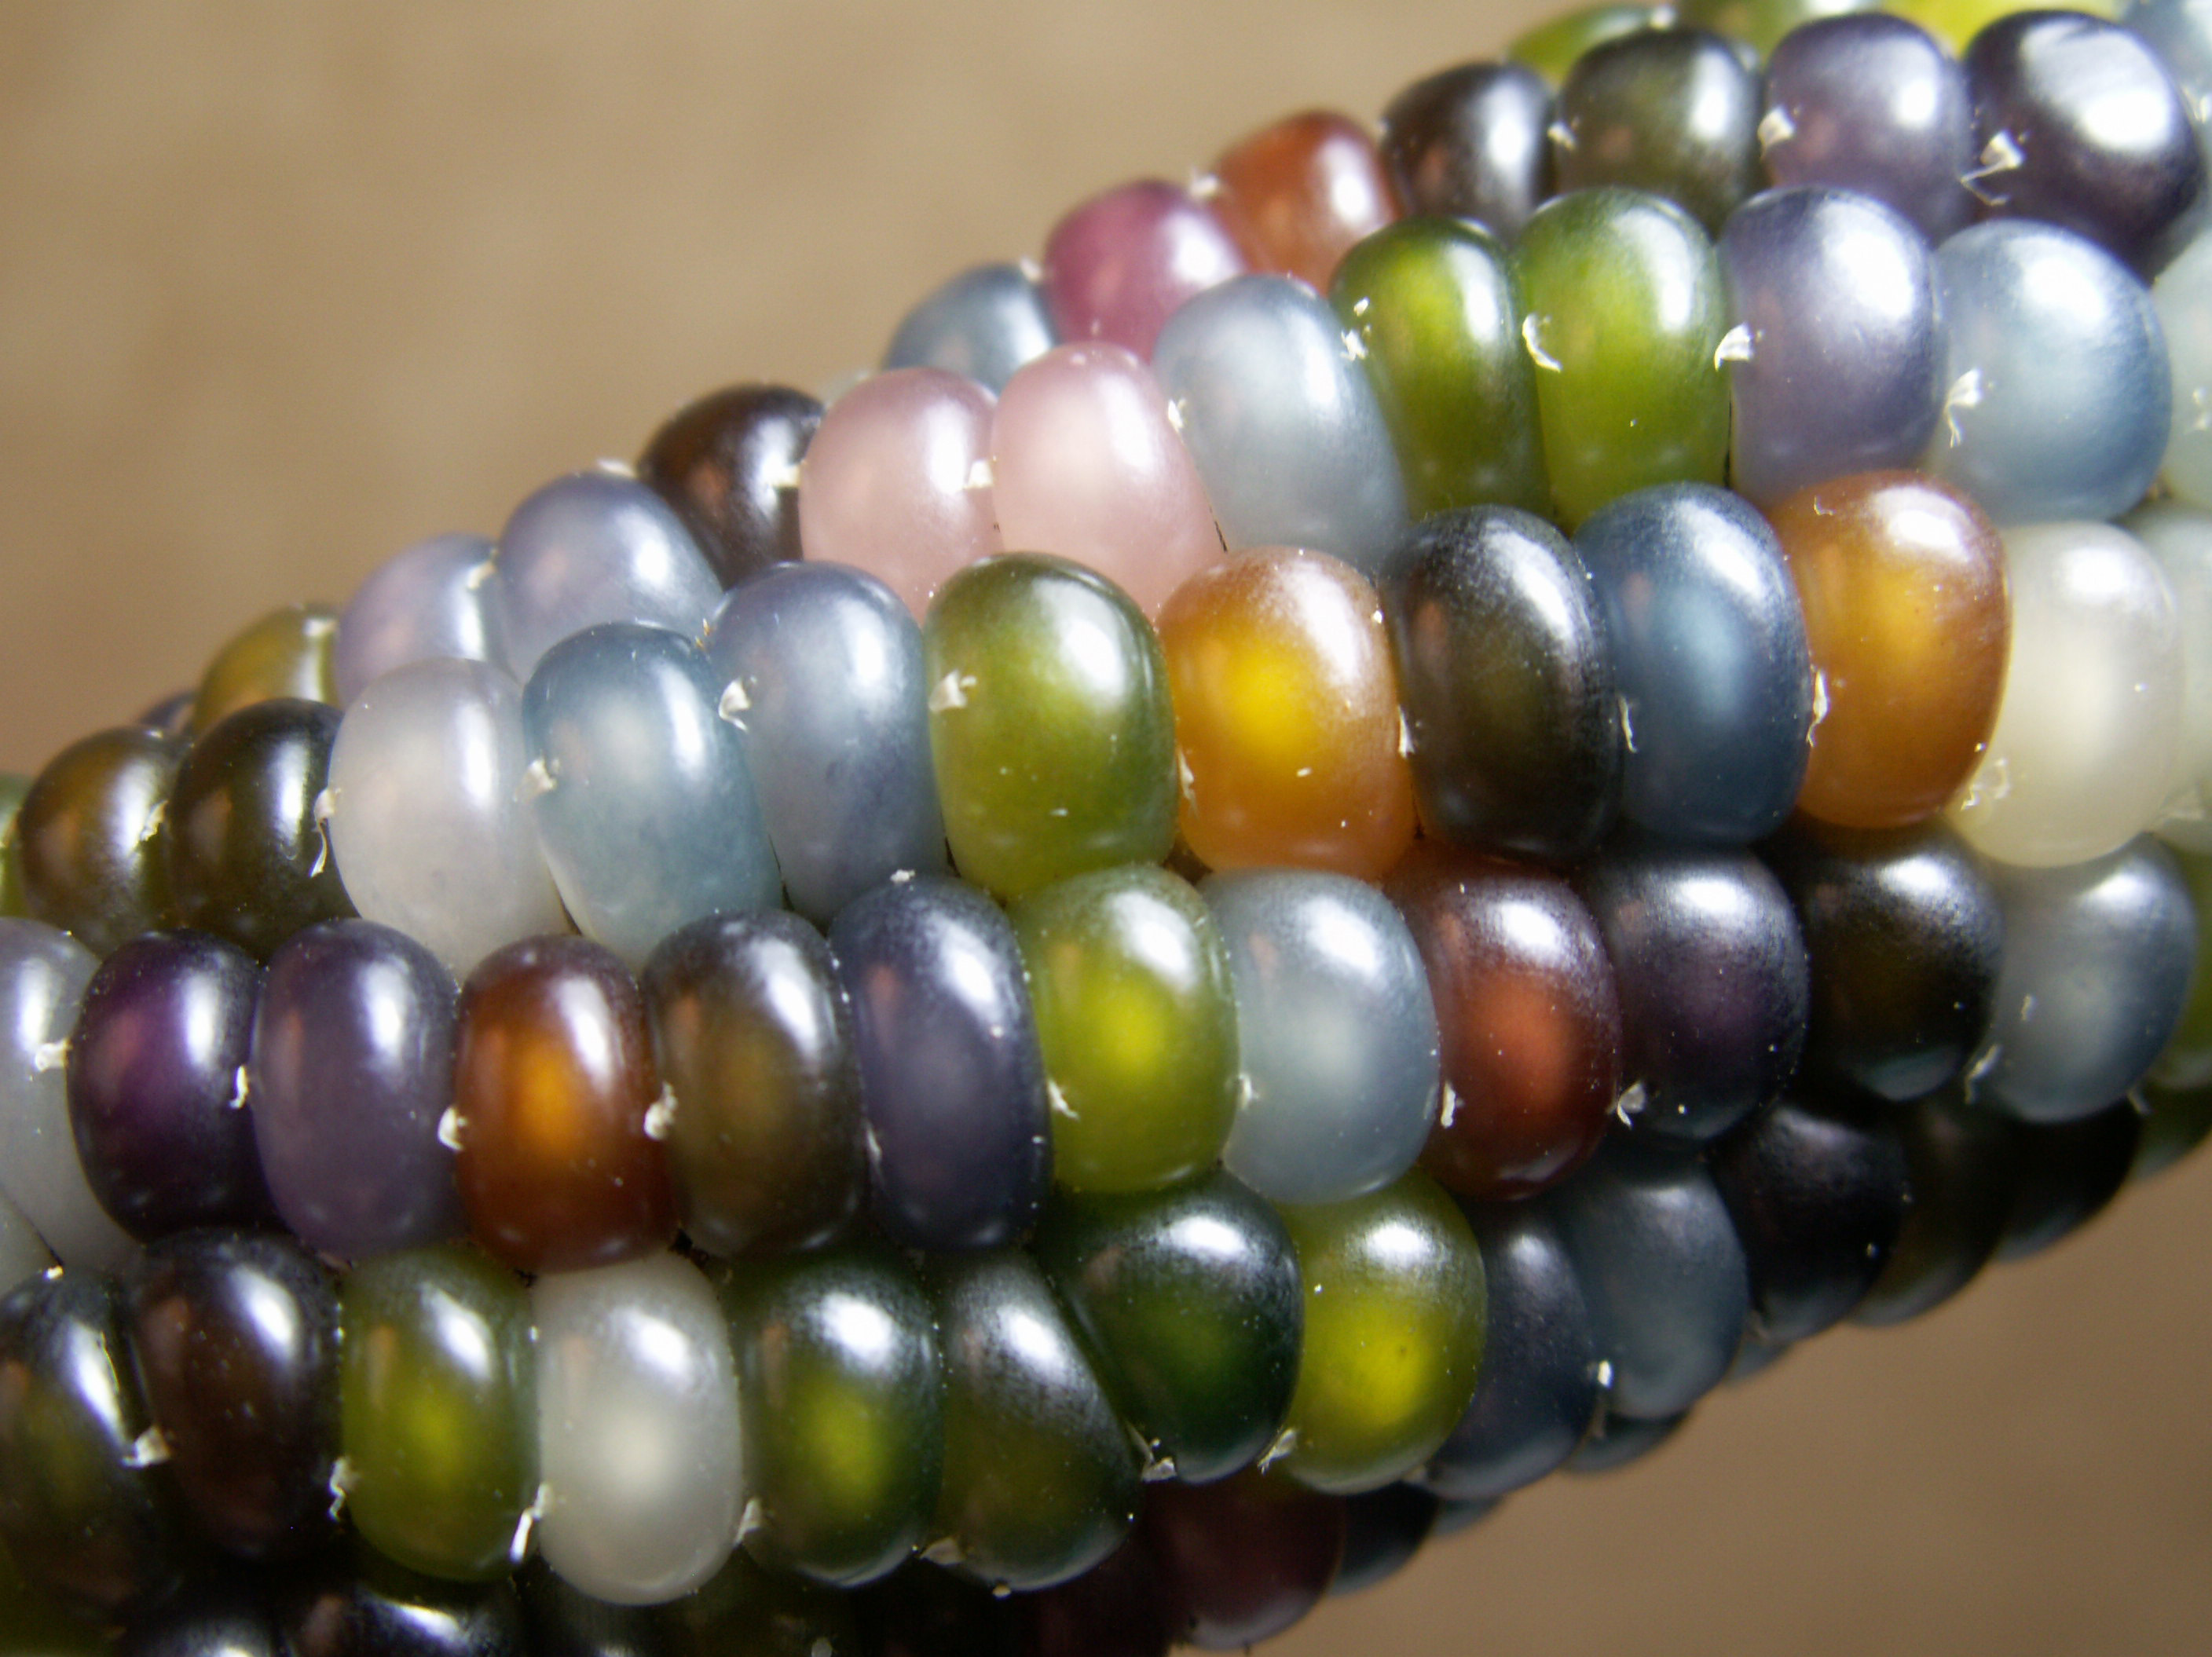 The nearly translucent Glass Gem Corn looks more like a work of art than a vegetable. Photo: Greg Schoen/Native Seeds